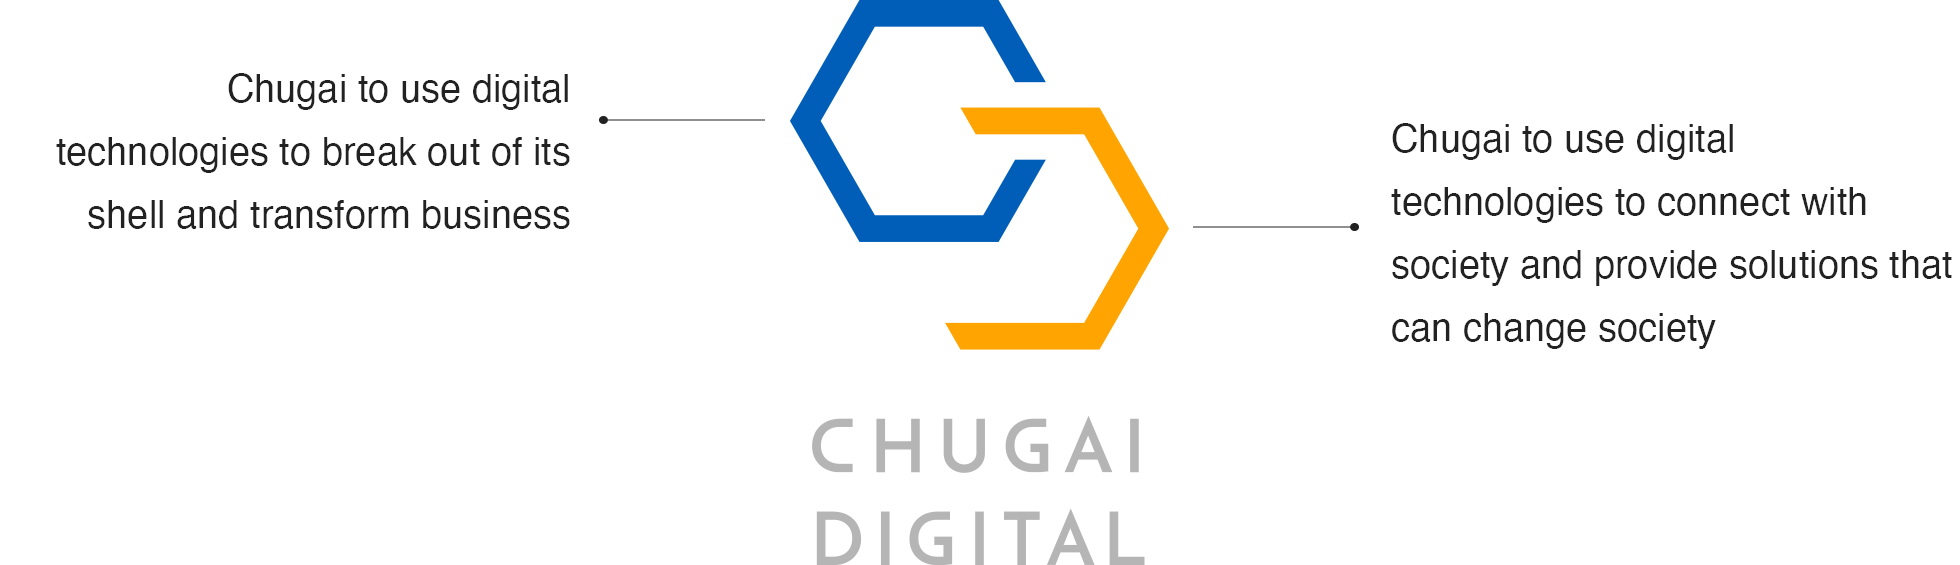 Chugai to use digital technologies to break out of its shell and transform business, Chugai to use digital technologies to connect with society and provide solutions that can change society